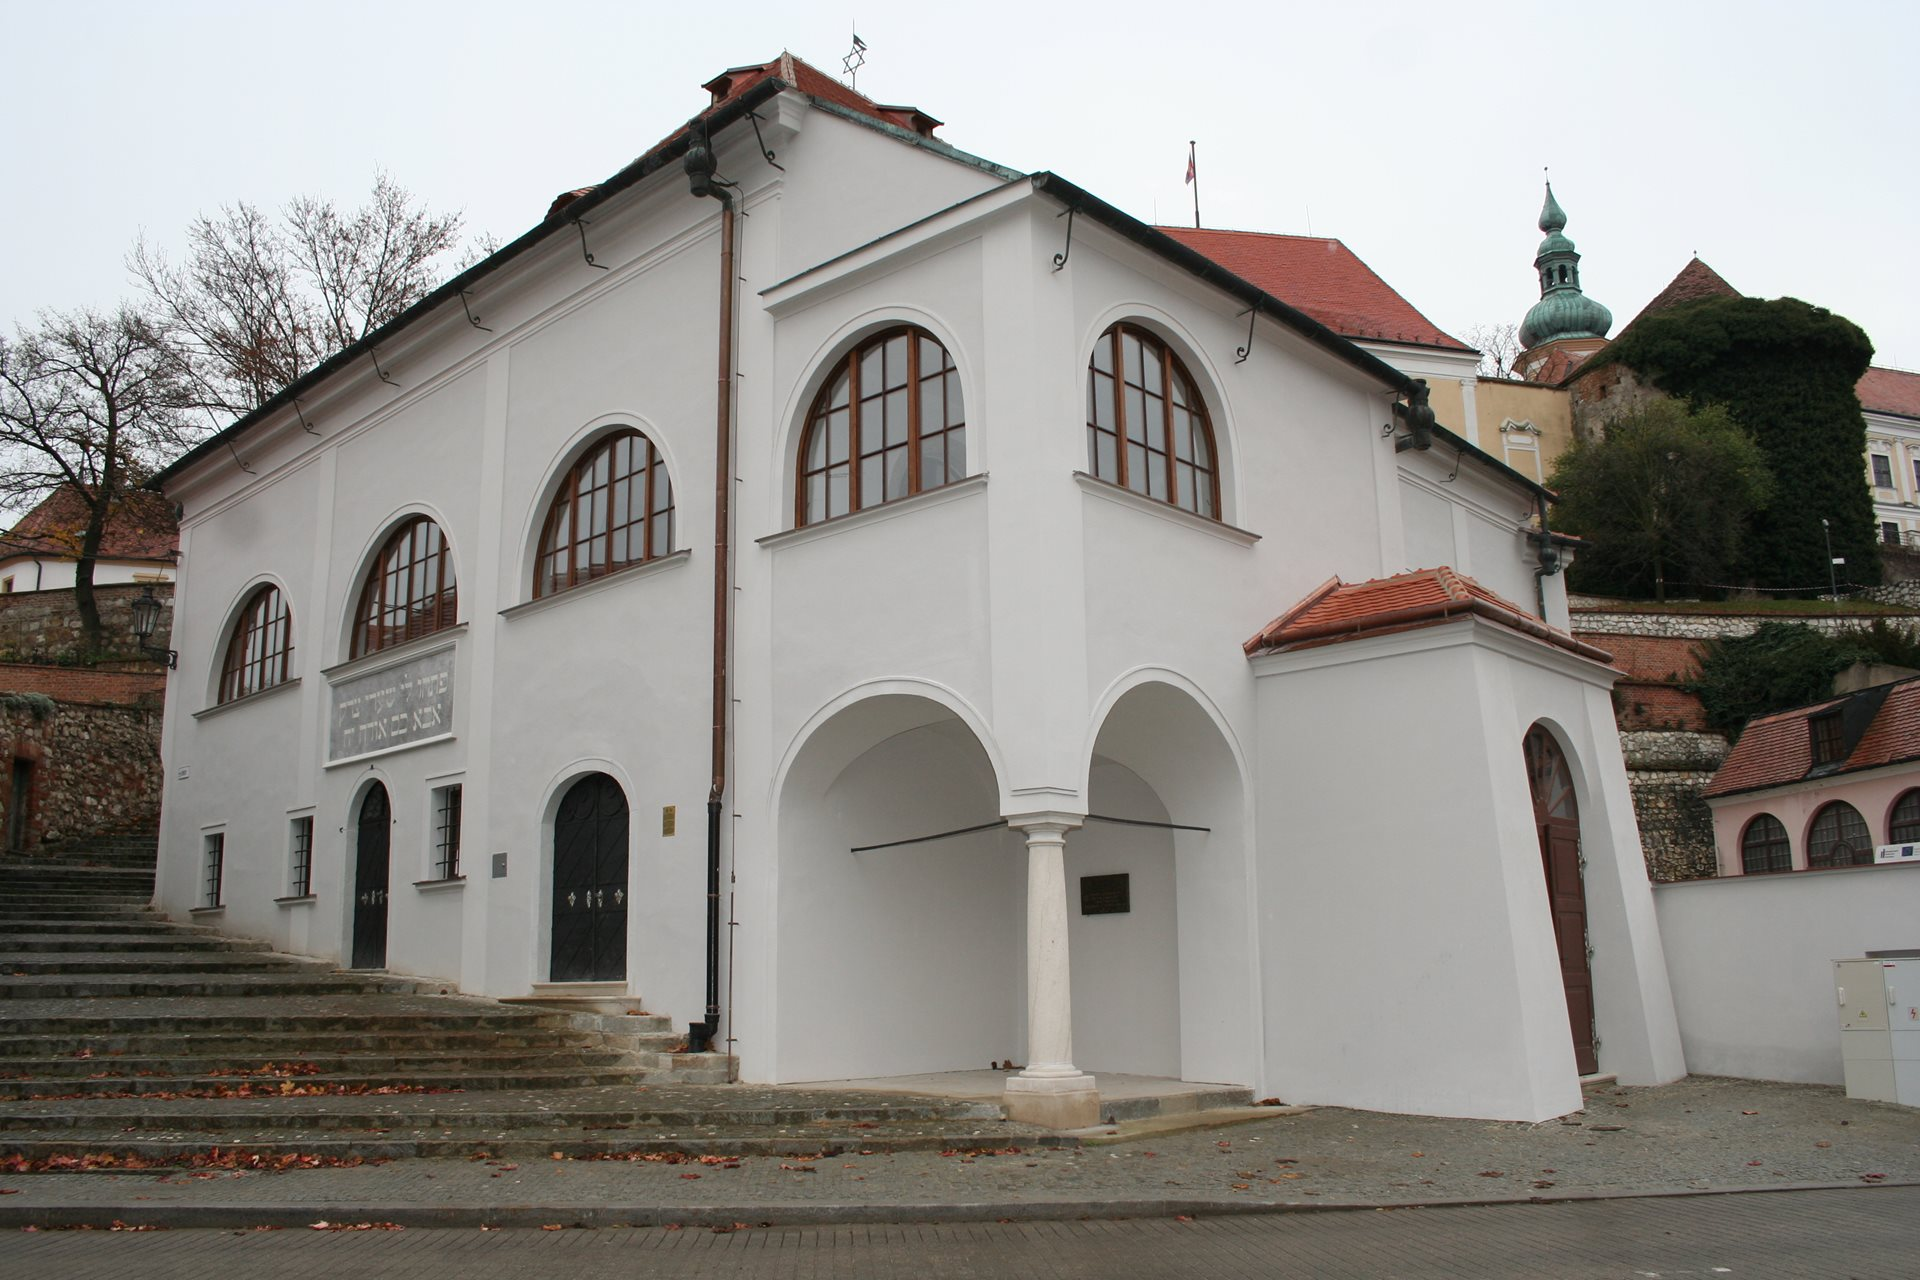 The Upper Synagogue in Mikulov